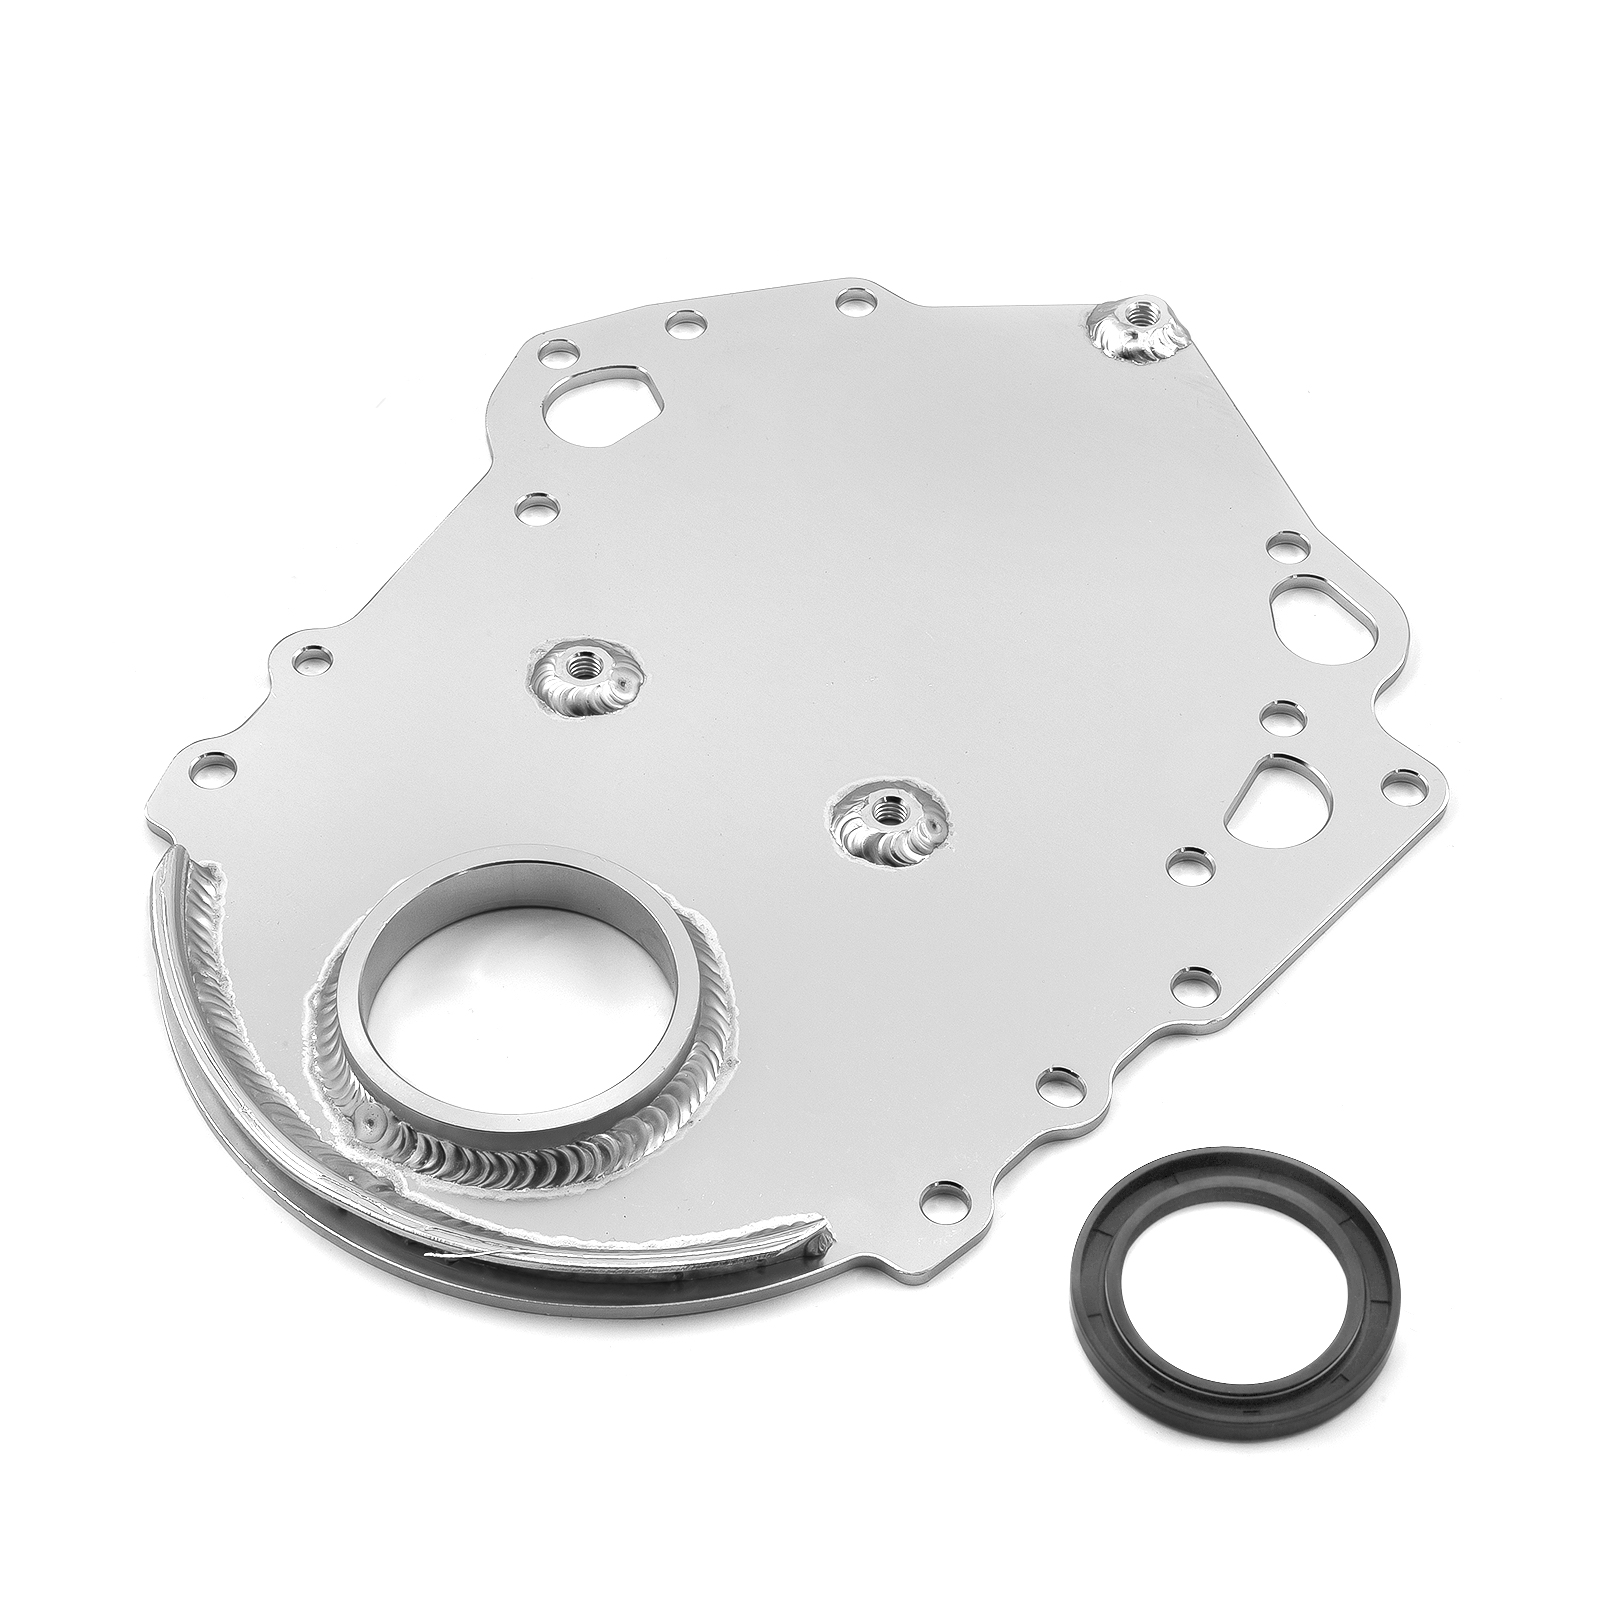 Ford 302 351C Cleveland Silver Aluminum Timing Cover with Seal